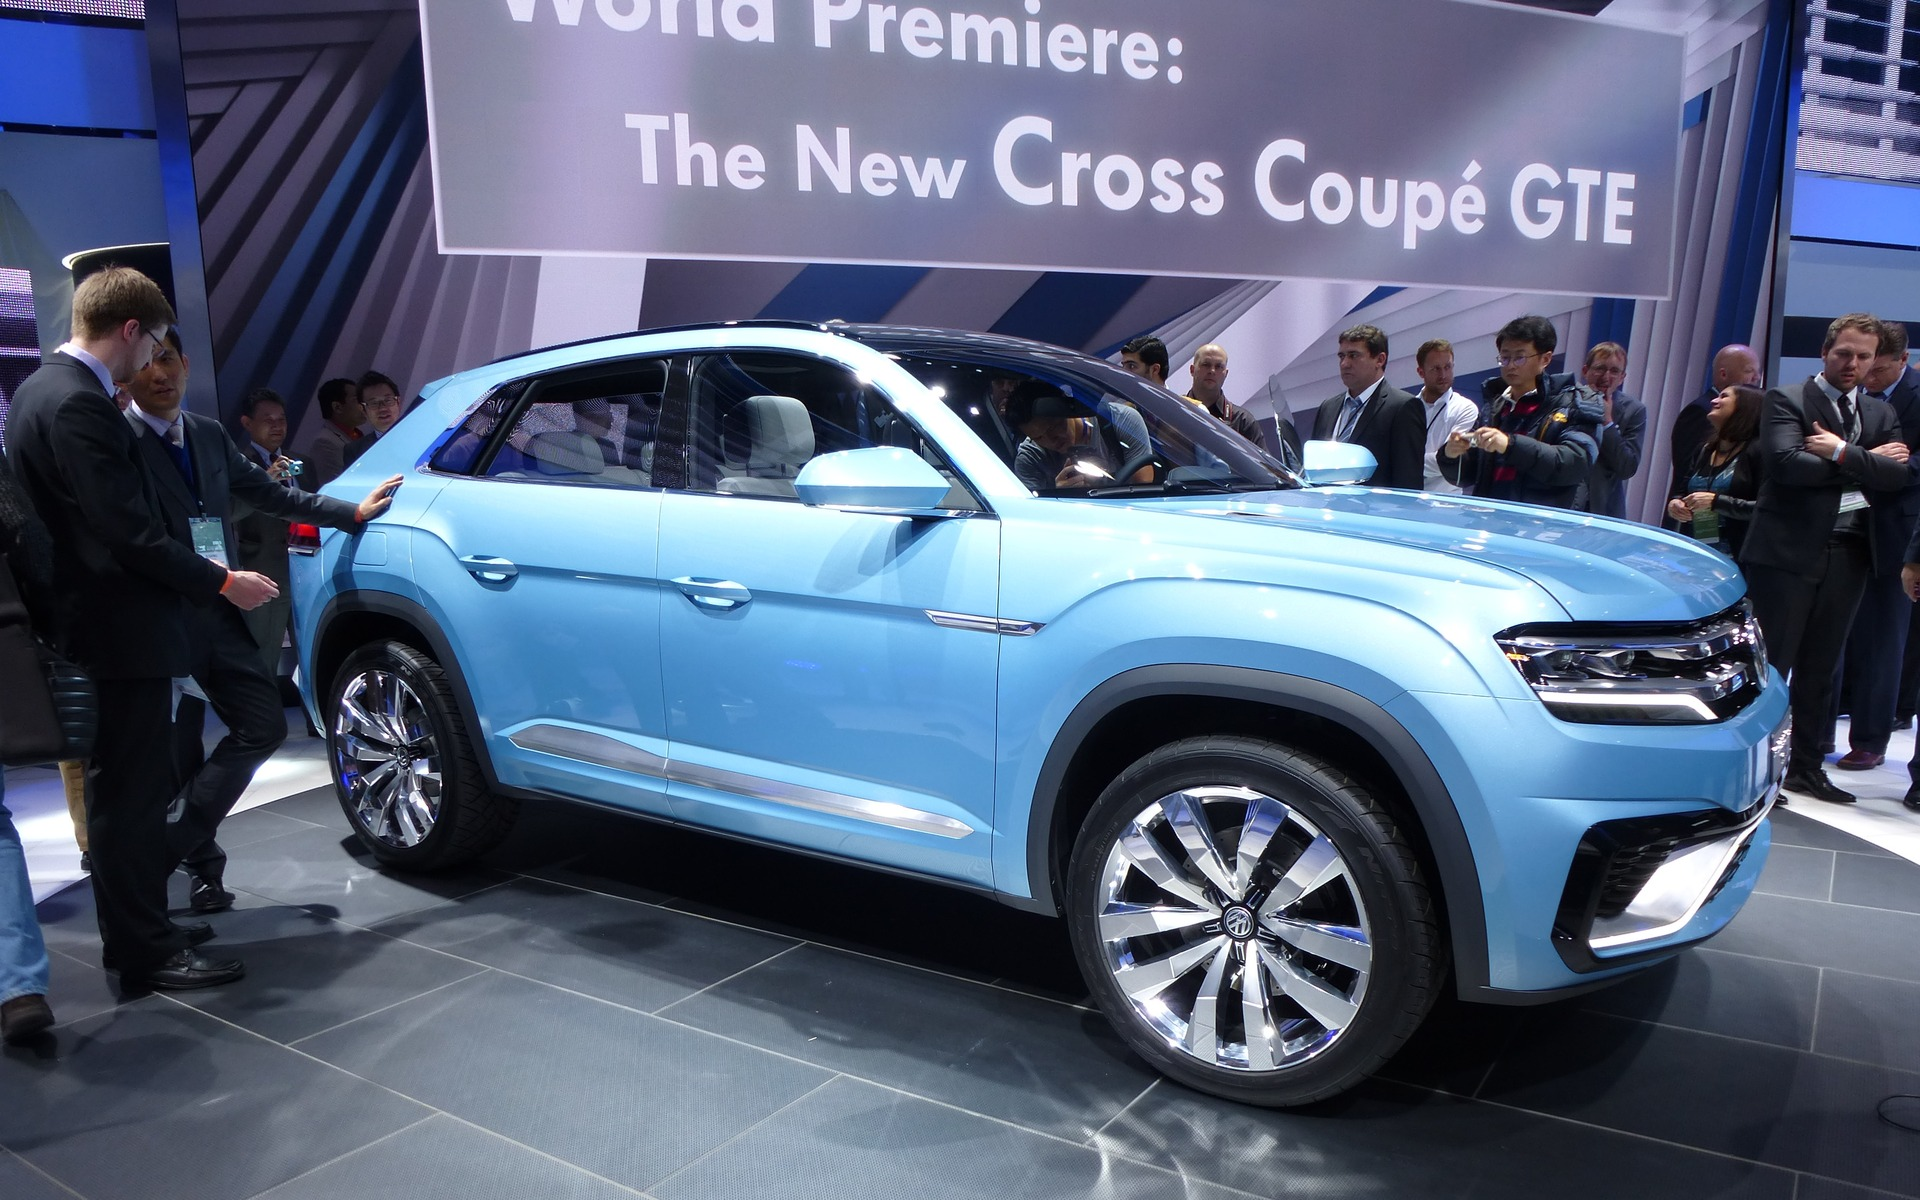 volkswagen cross coupe gte concept a new suv for north america the car guide. Black Bedroom Furniture Sets. Home Design Ideas